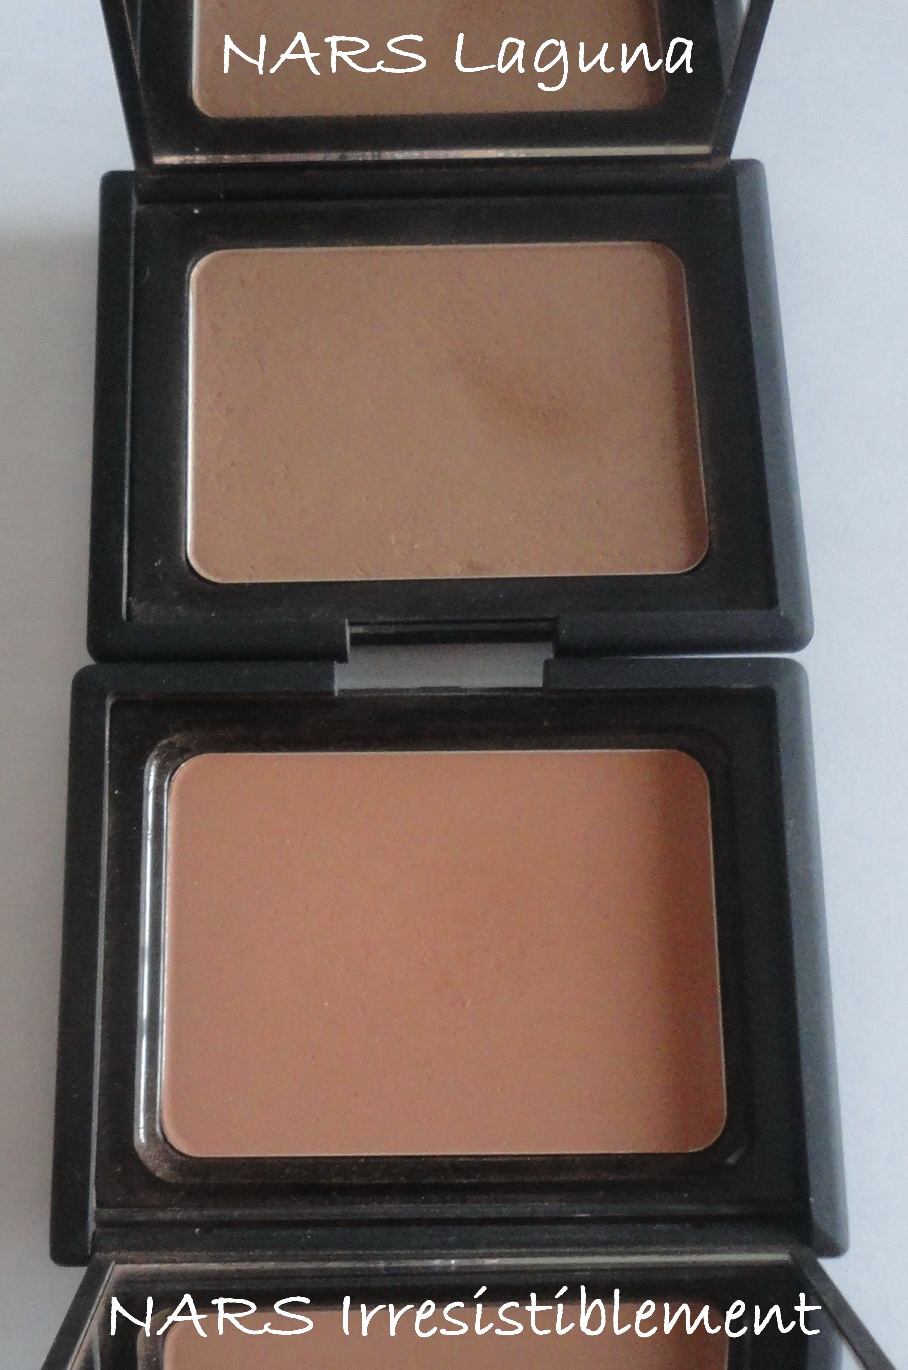 NARS Laguna VS NARS Irresistiblement - My Beauty Galleria